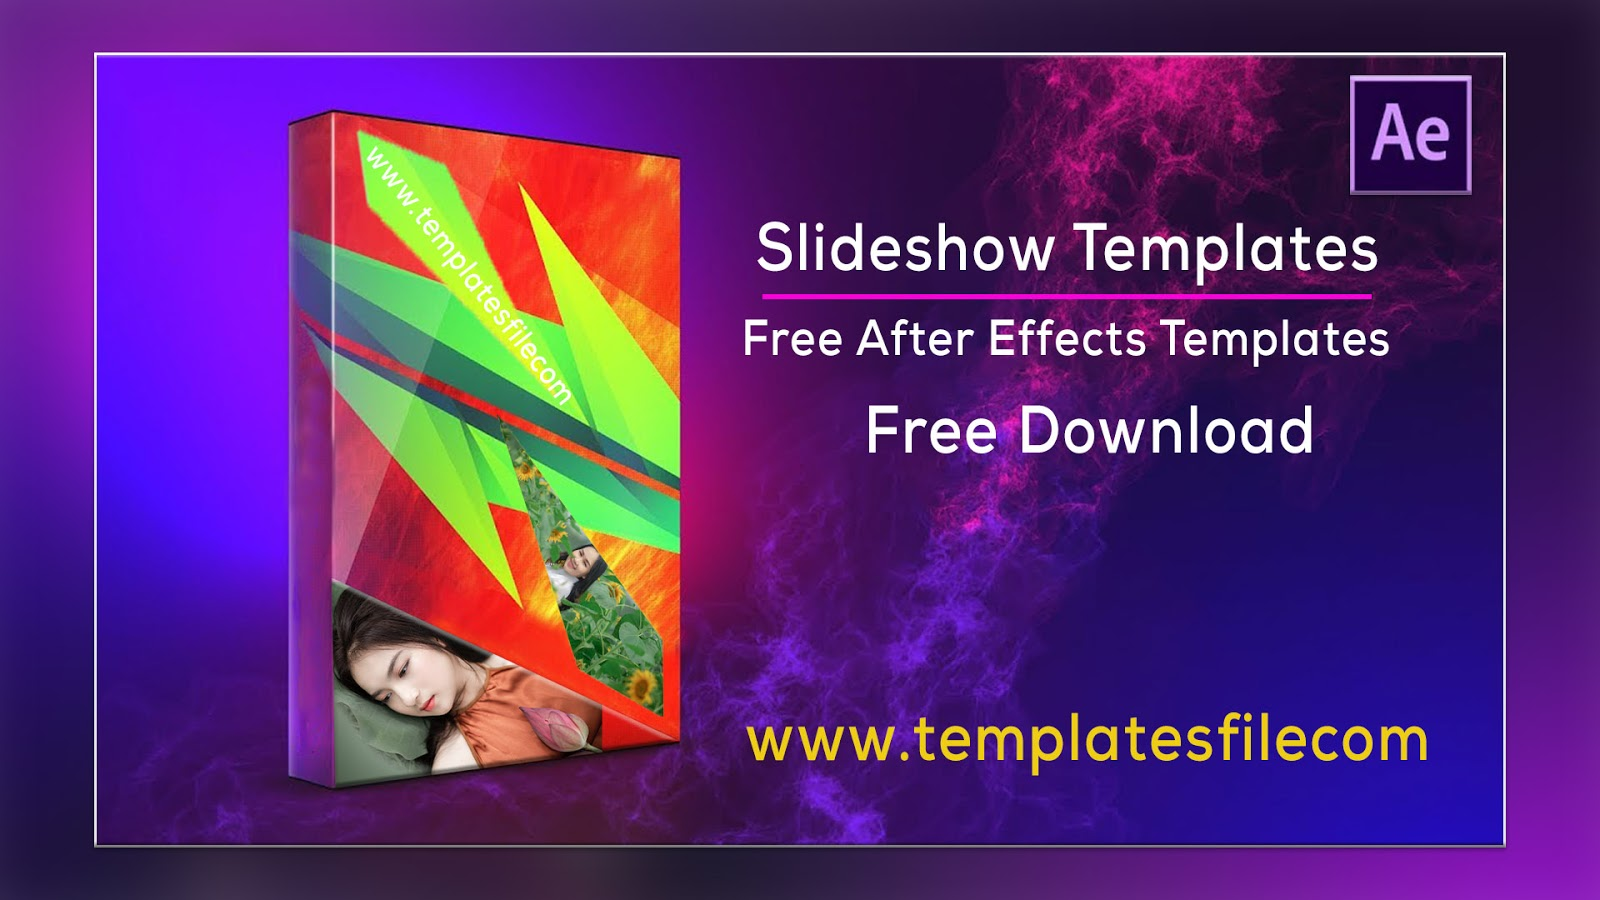 Free After Effects Slideshow Templates Free Download - Modern Promo Slideshow Free Download